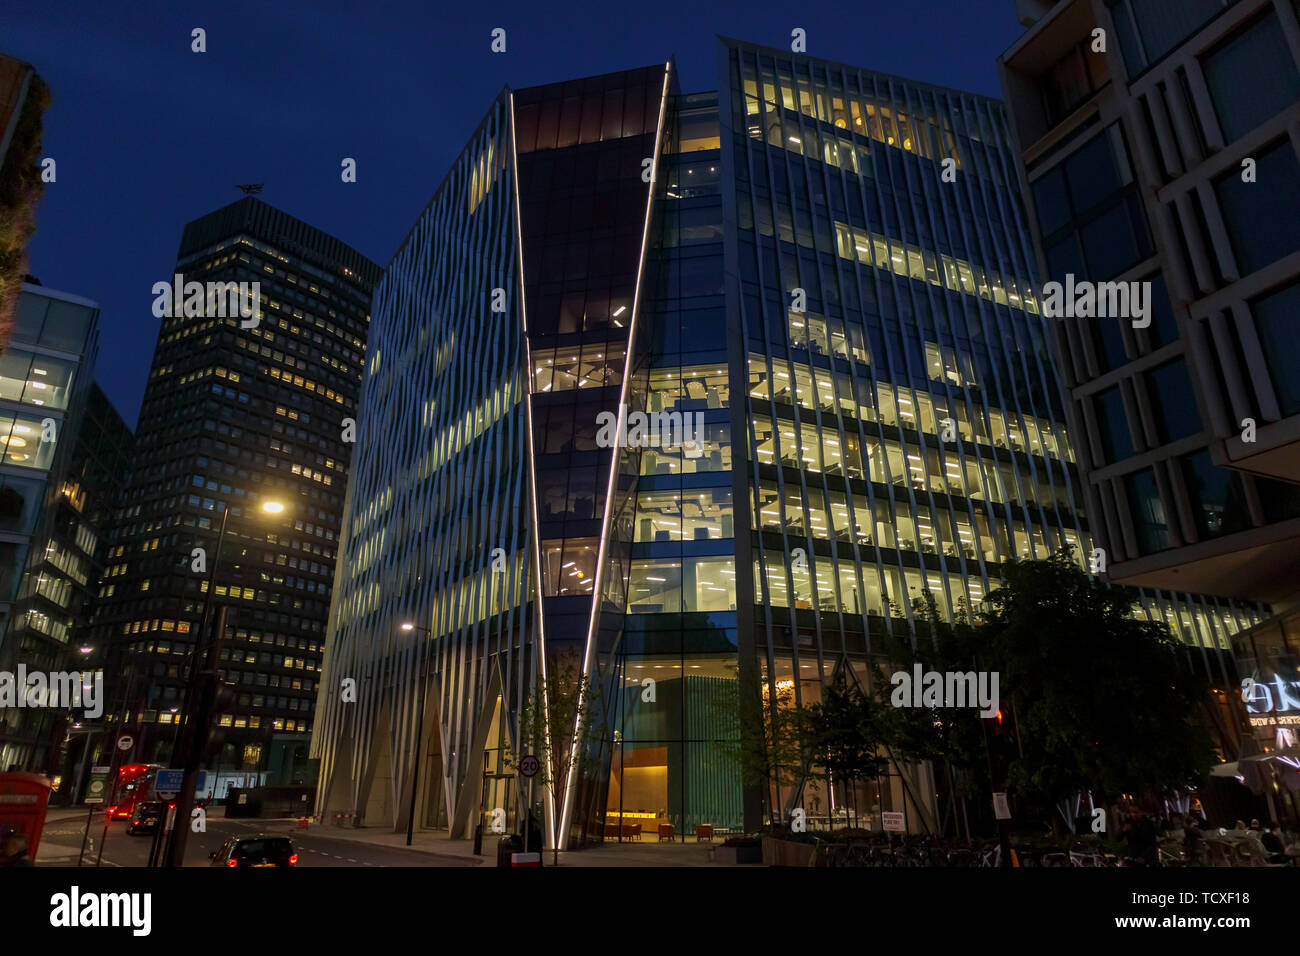 Nova, a modern high rise building by Morpheus London, in Belgravia, Victoria, Westminster London SW1, UK, at night Stock Photo